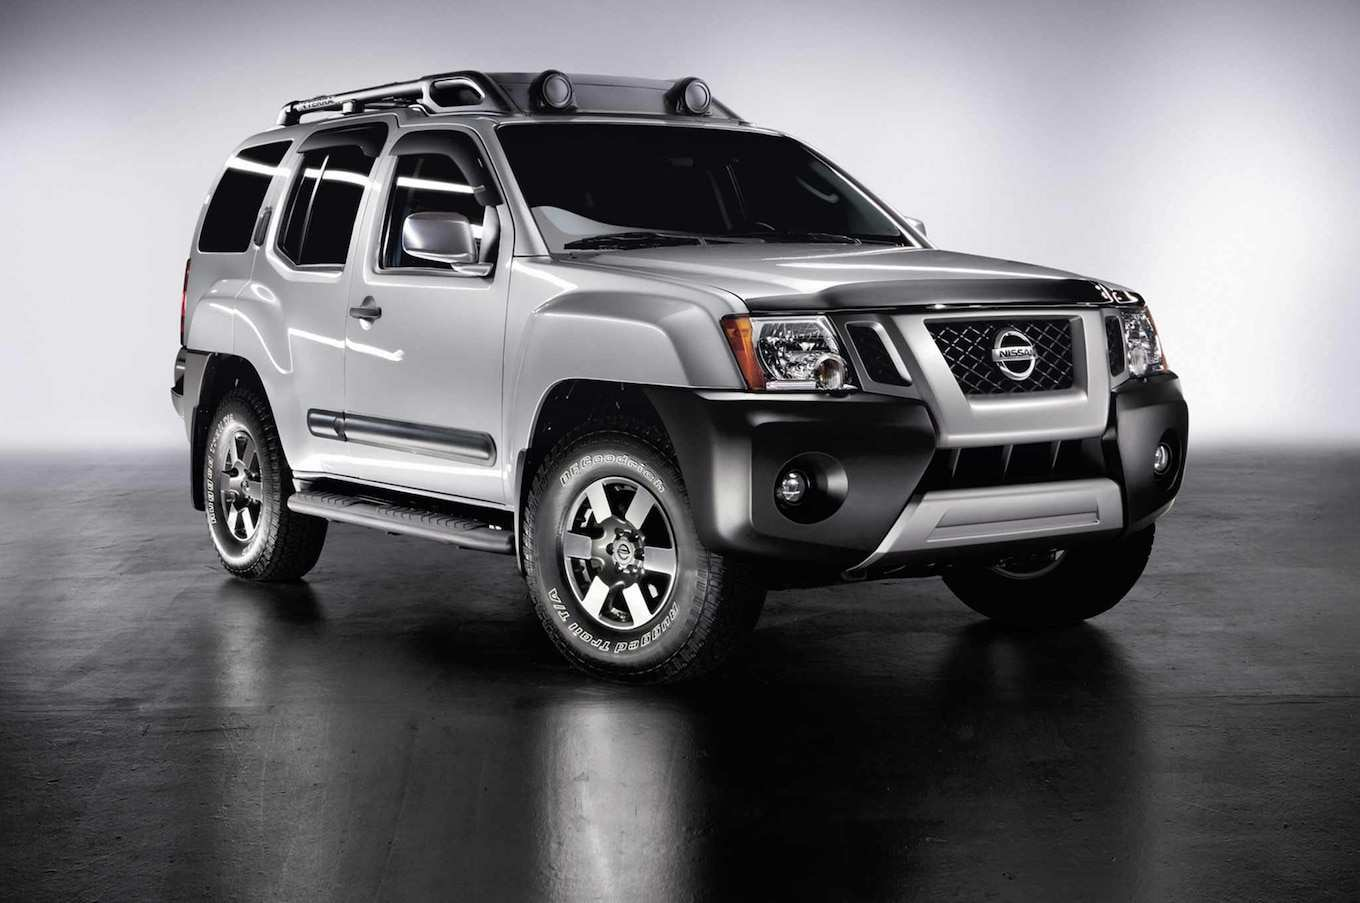 91 New Xterra Concept Spy Shoot by Xterra Concept